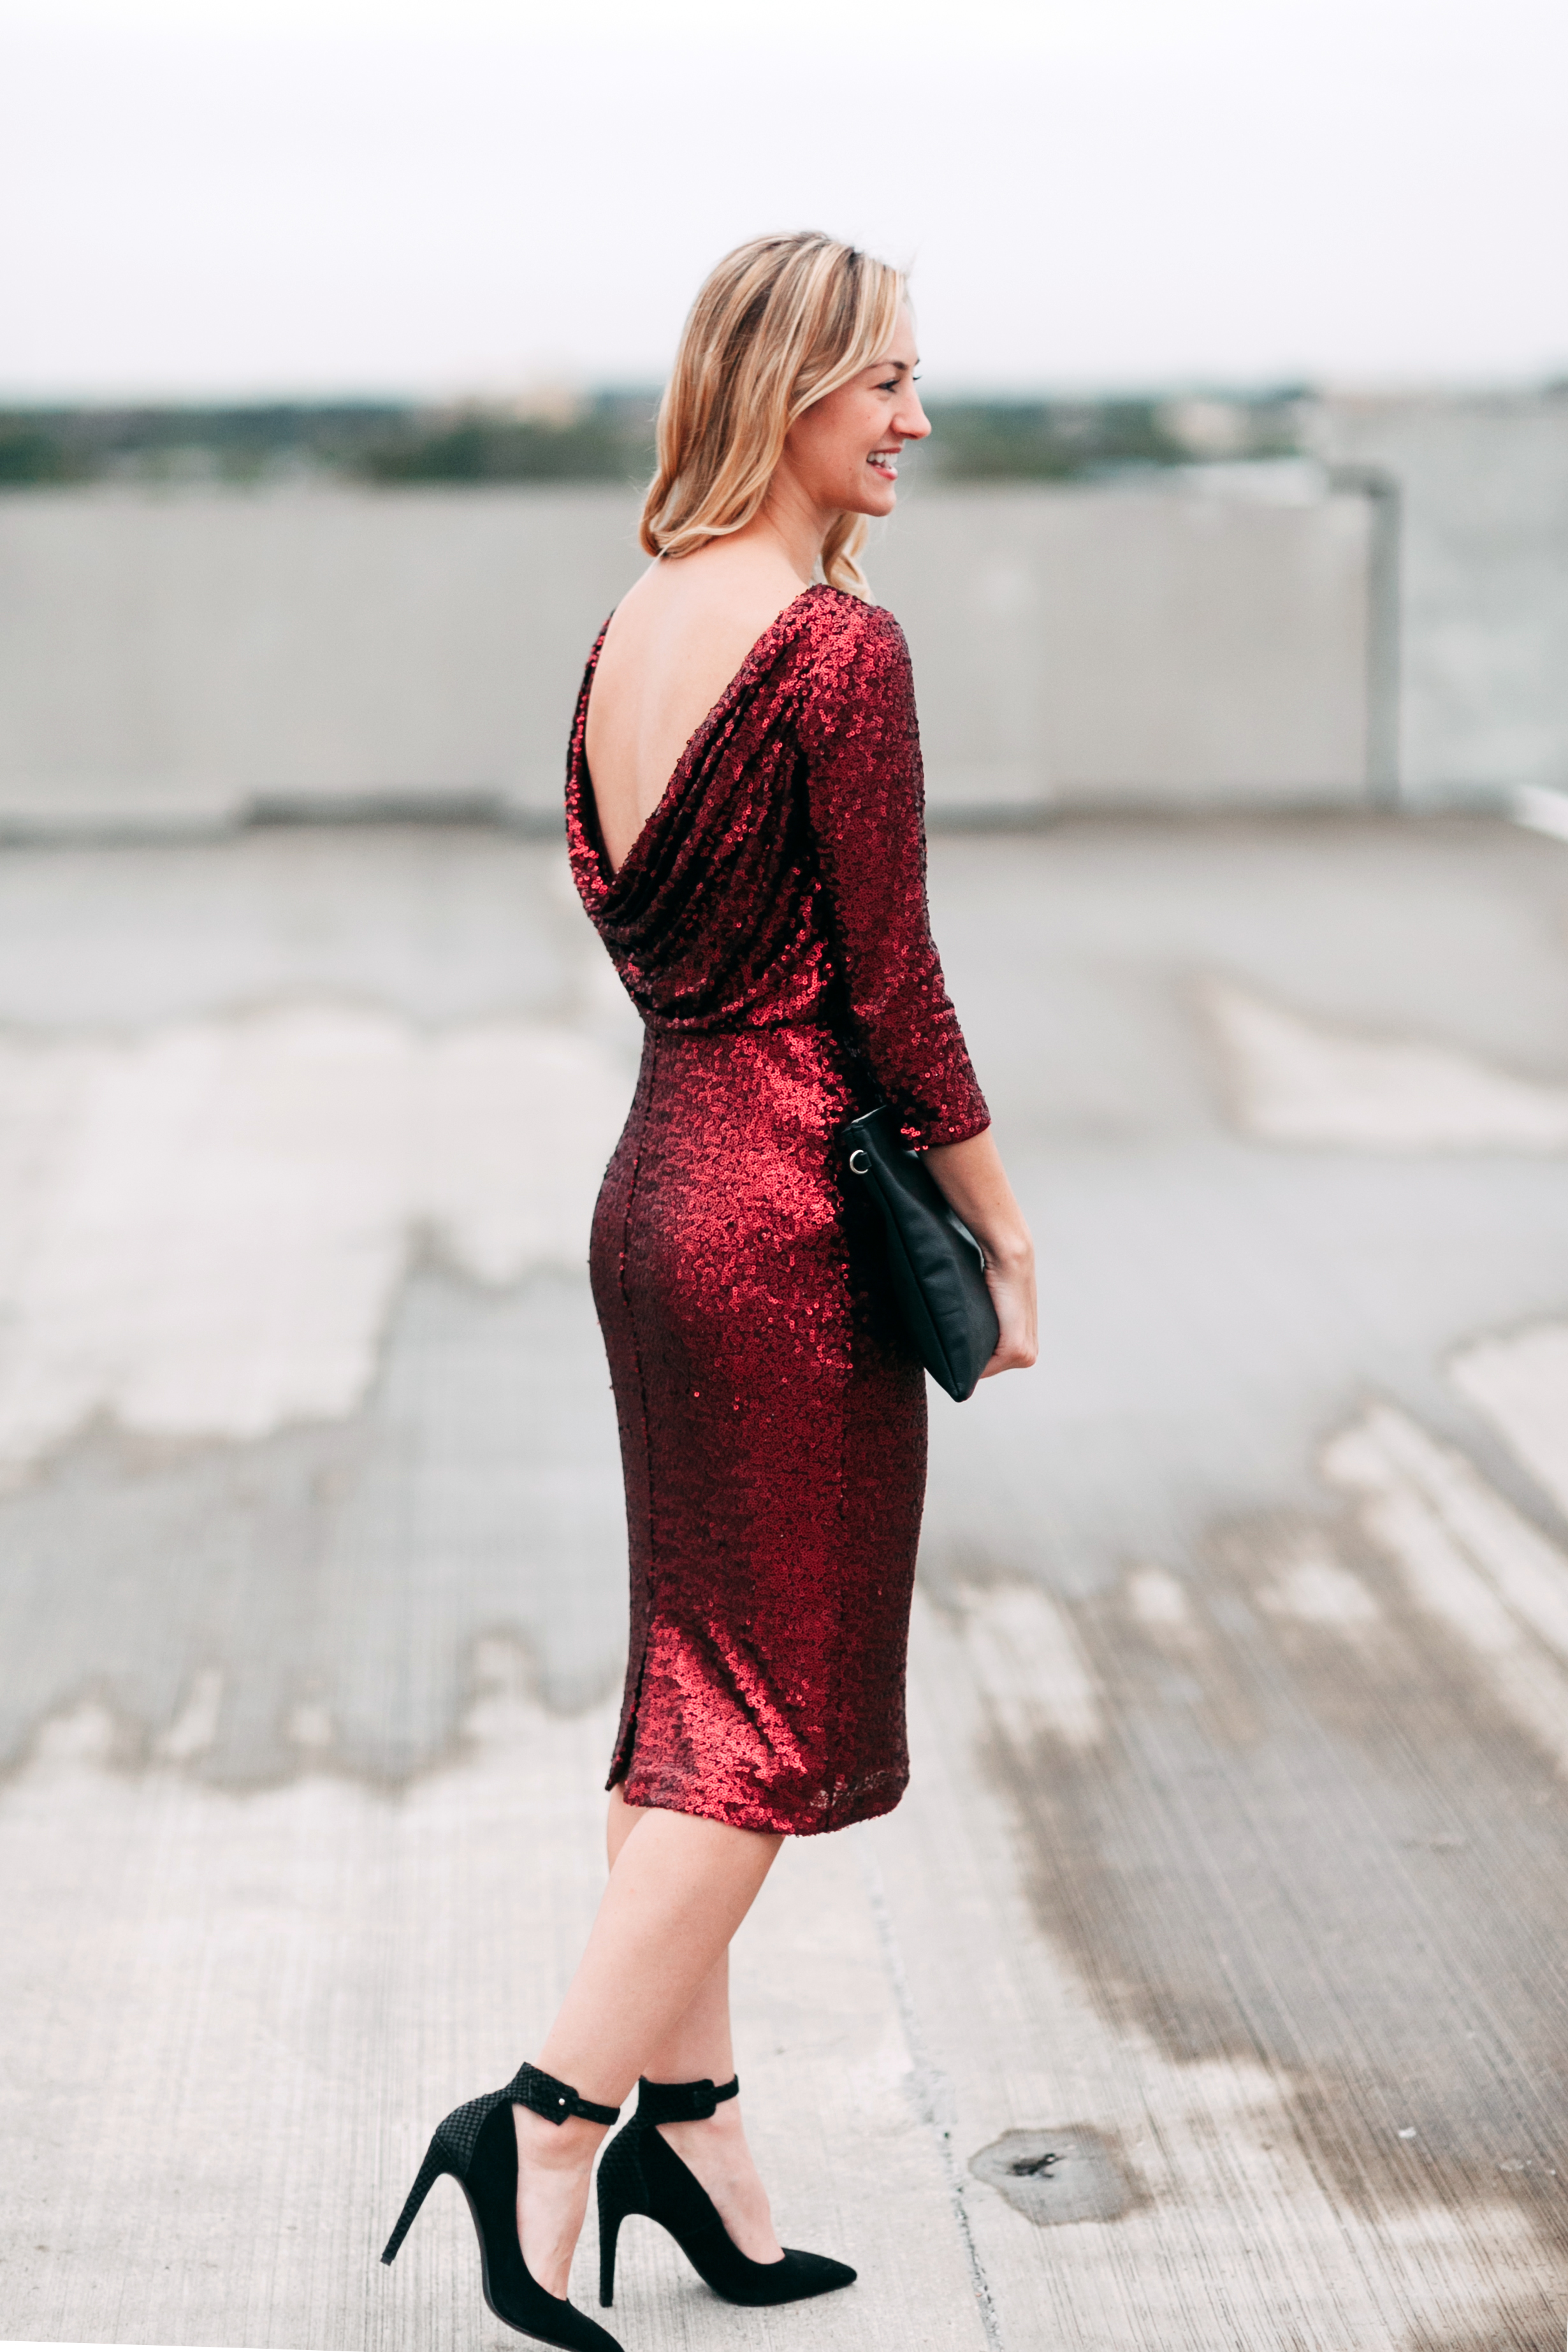 livvyland-blog-olivia-watson-badgley-mischka-red-wine-merlot-sequins-sheath-dress-christmas-holiday-party-style-outfit-inspiration-dress-kayla-snell-photography-austin-texas-fashion-blogger-3